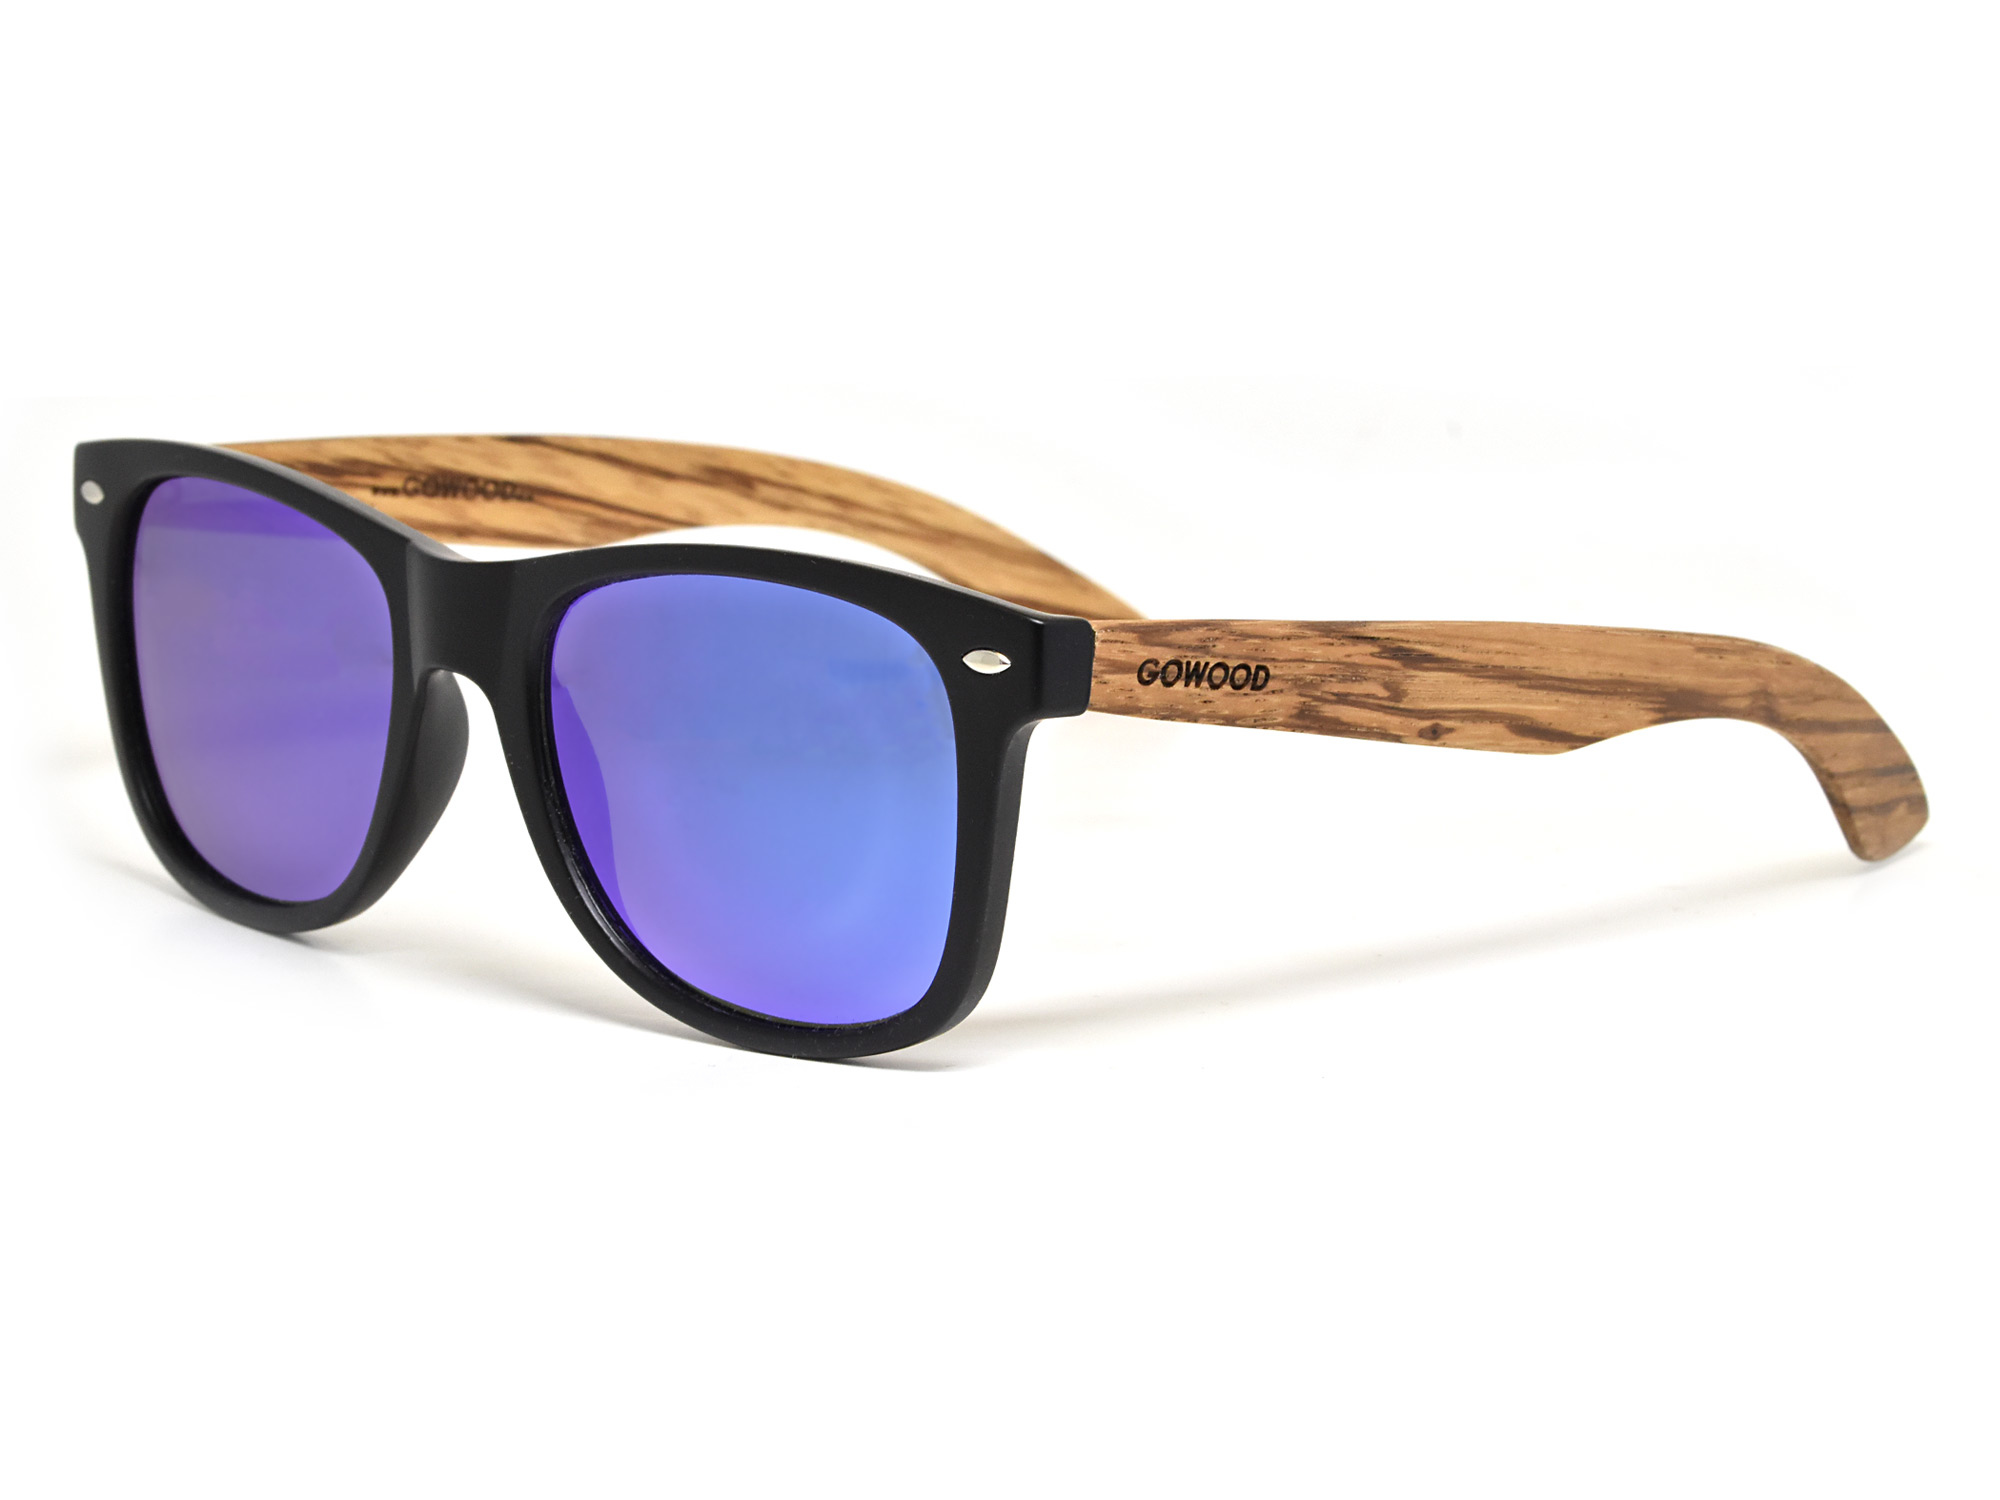 Zebra wood sunglasses with blue mirrored lenses